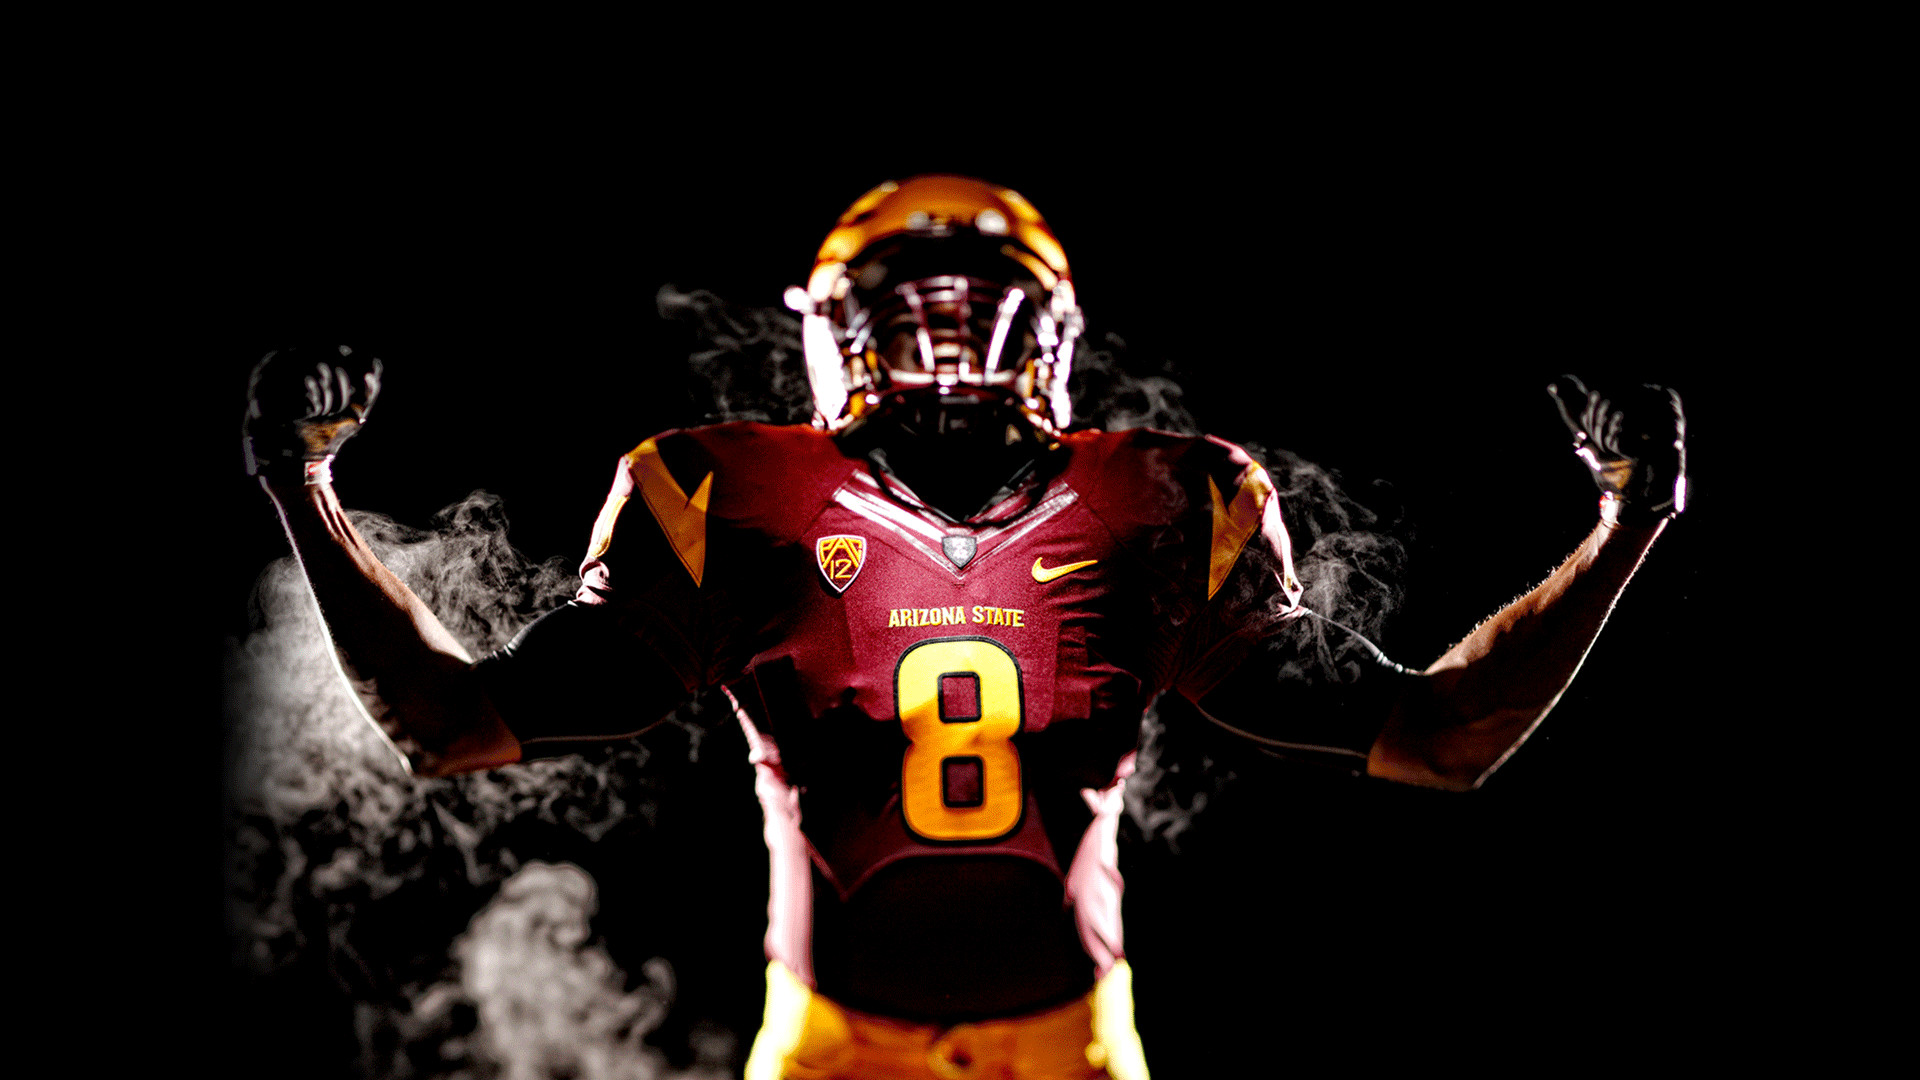 Res: 1920x1080, Commenting this here so you guys see it. I watched ASU destroy USC last  year and I sort of fell in love with you guys.